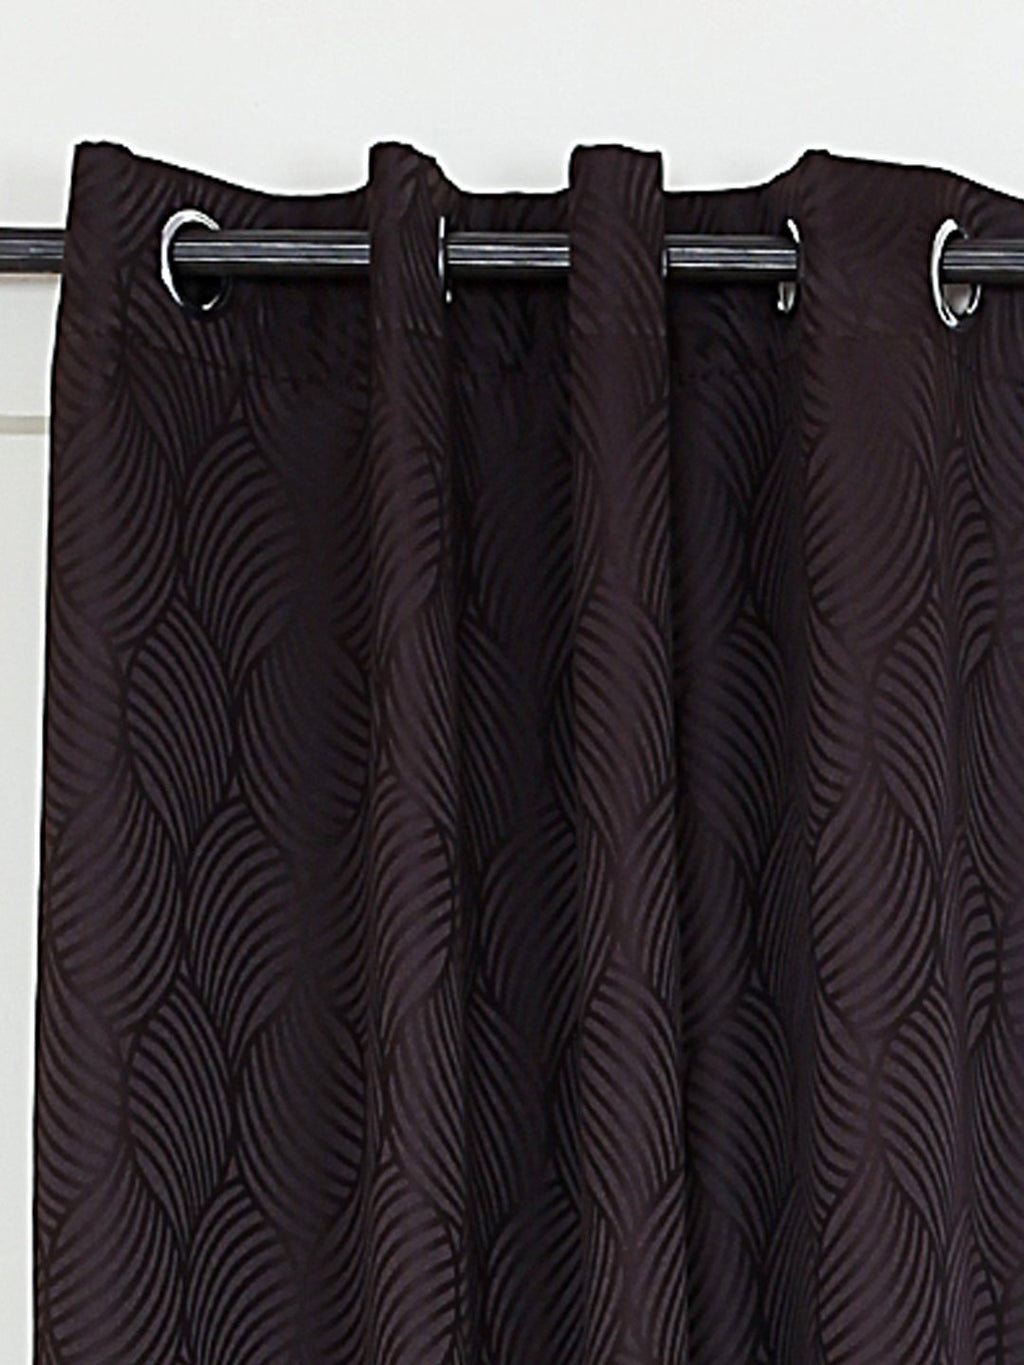 RANGRAGE 1 Piece Eyelet Polyester Window Curtain, 5ft, Brown